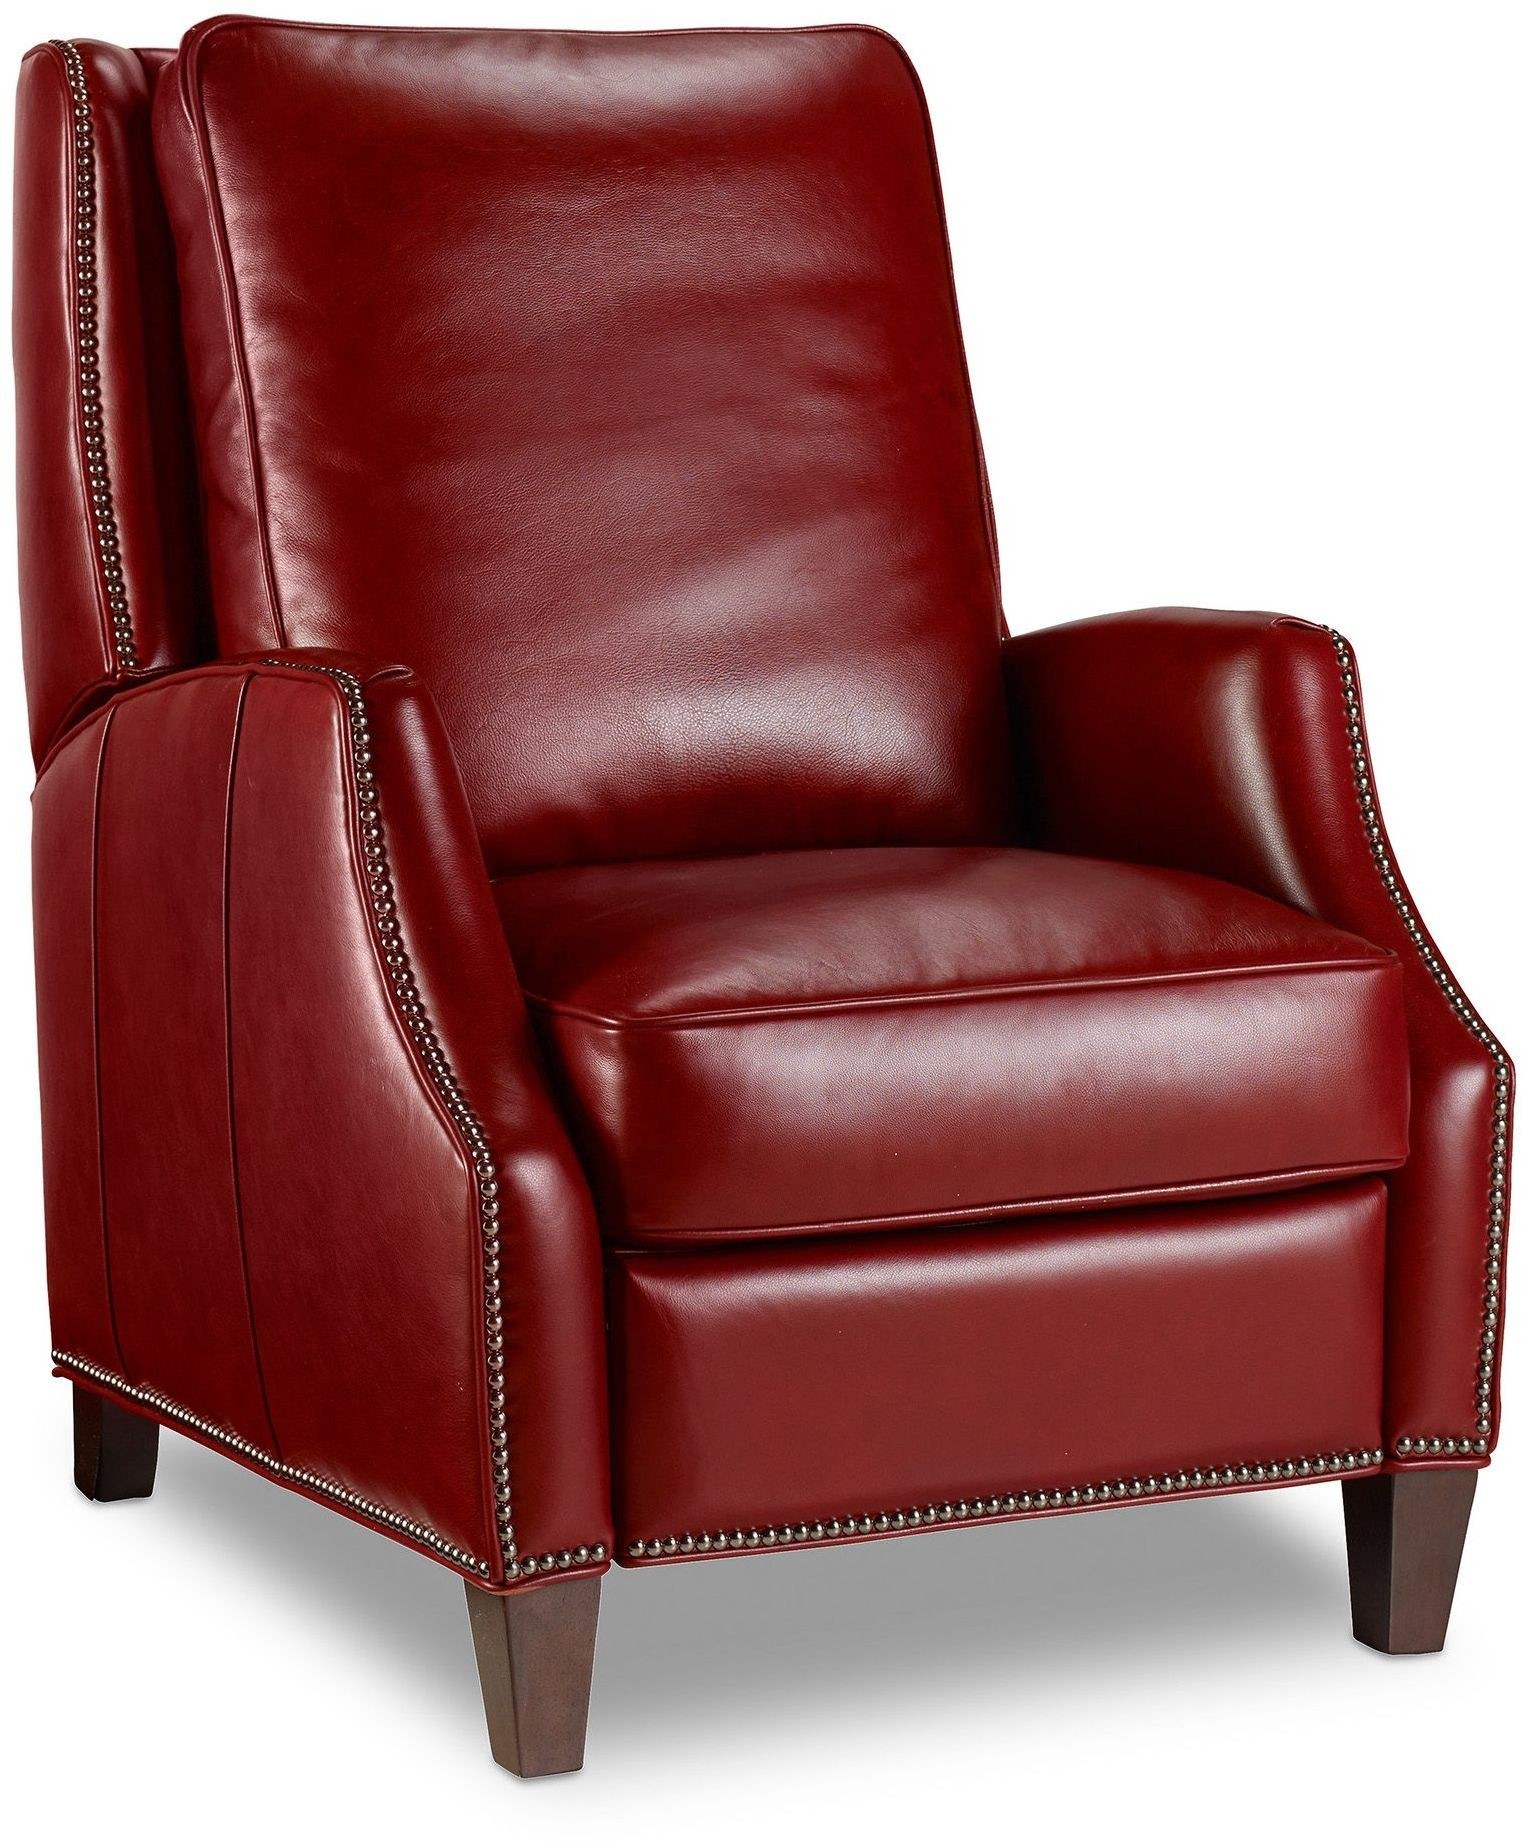 red recliner chairs wholesale party tables and kerley leather from hooker coleman furniture